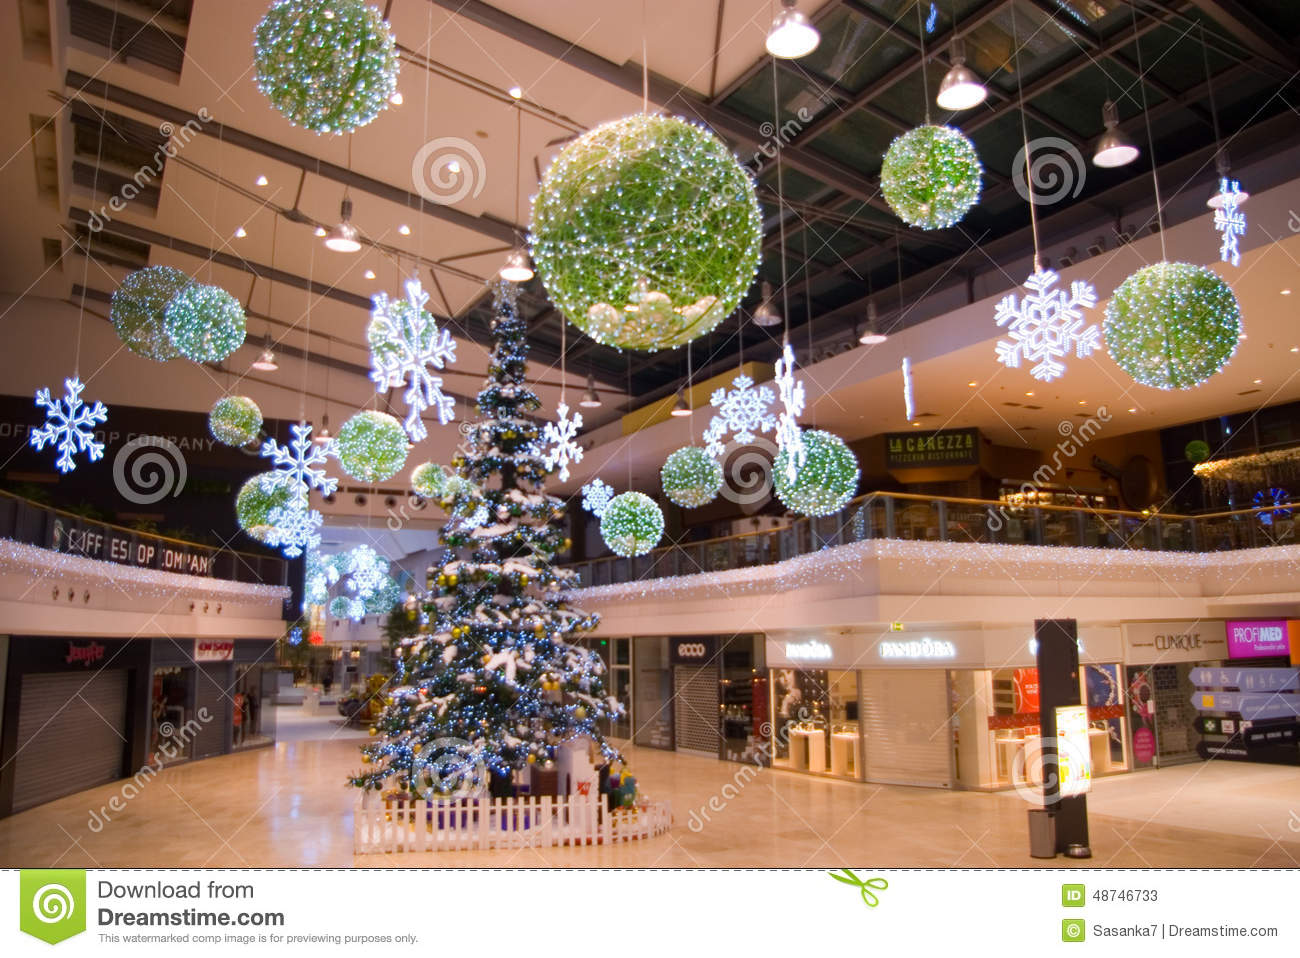 christmas decor at prague shopping center - Mall Christmas Decorations